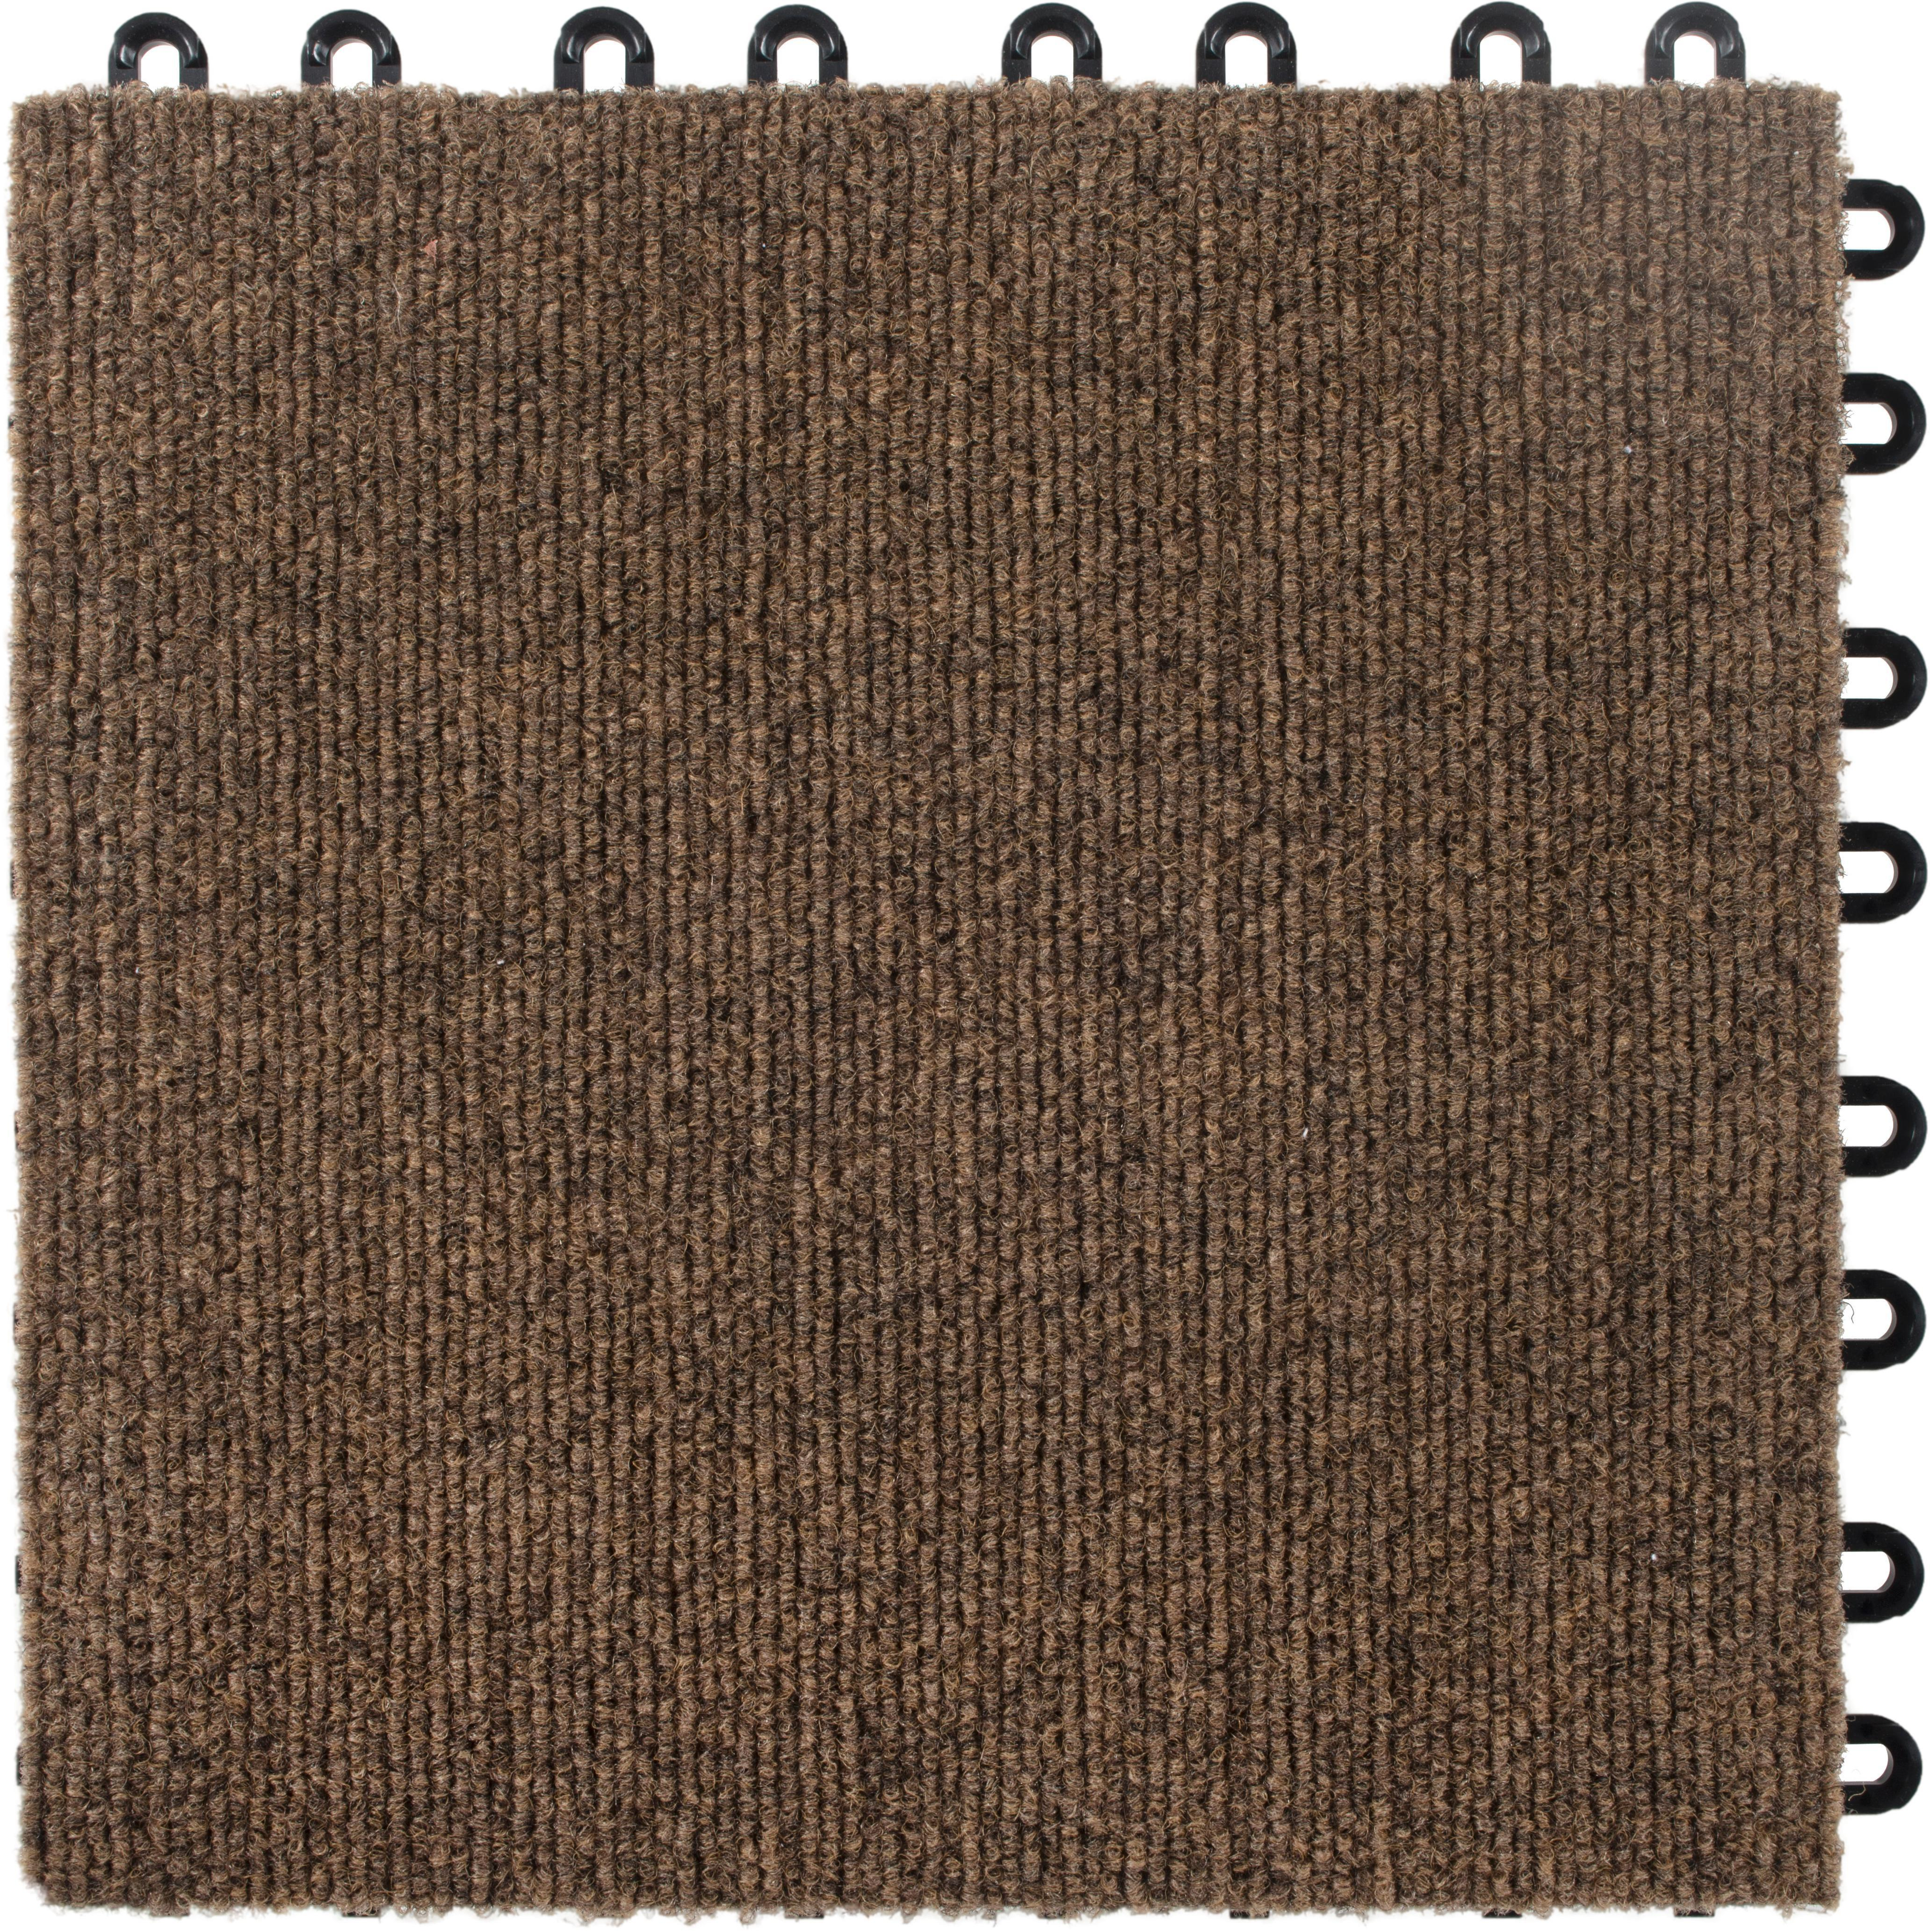 Kraus Carpet Tile Images The Right For Every Room